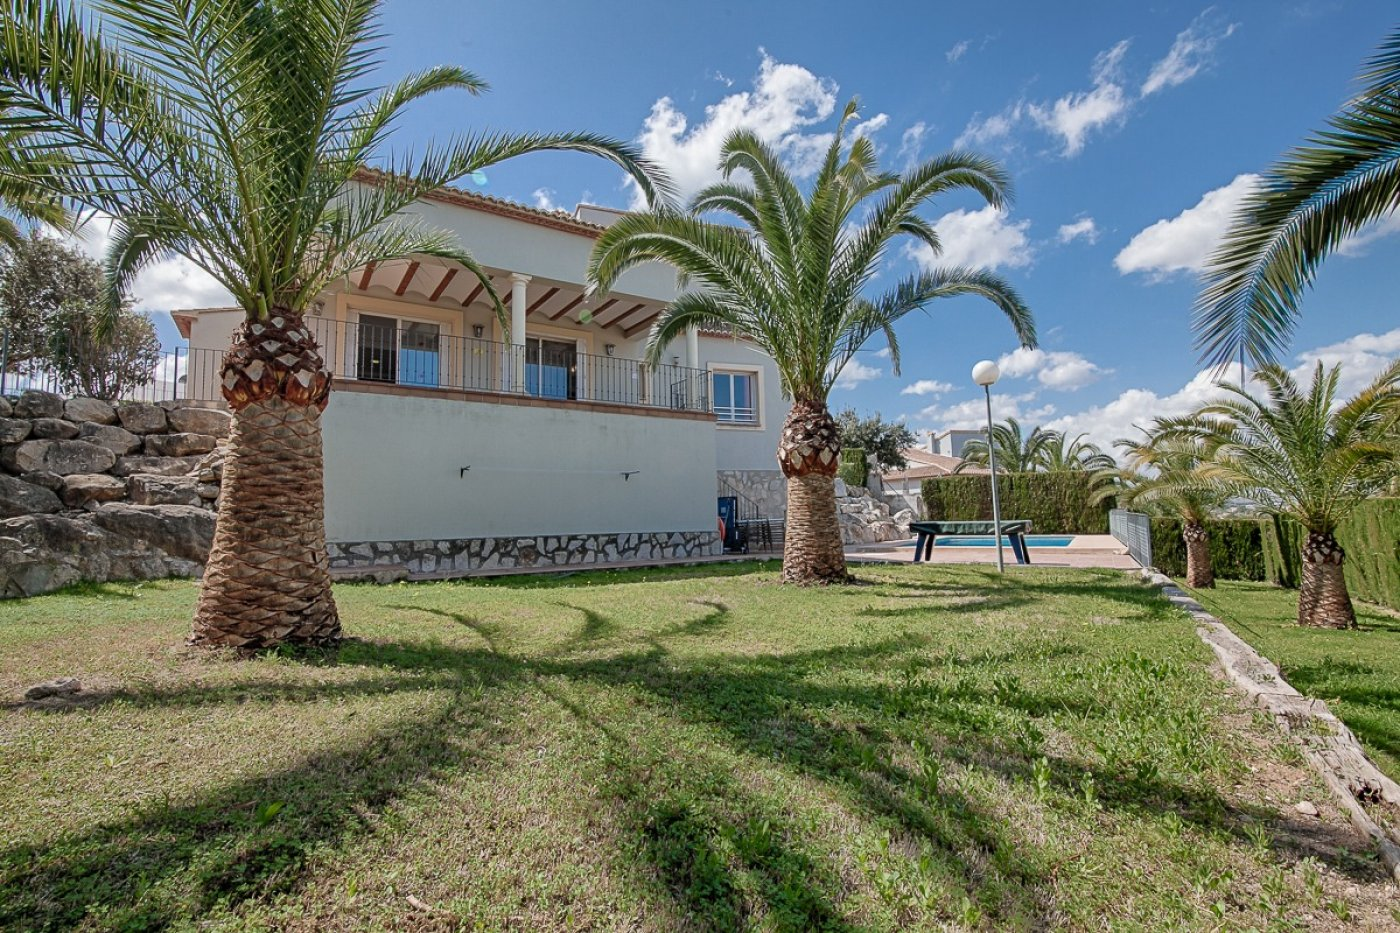 Villa - Ready To Move And Live - Cabanes - Jávea-Xàbia